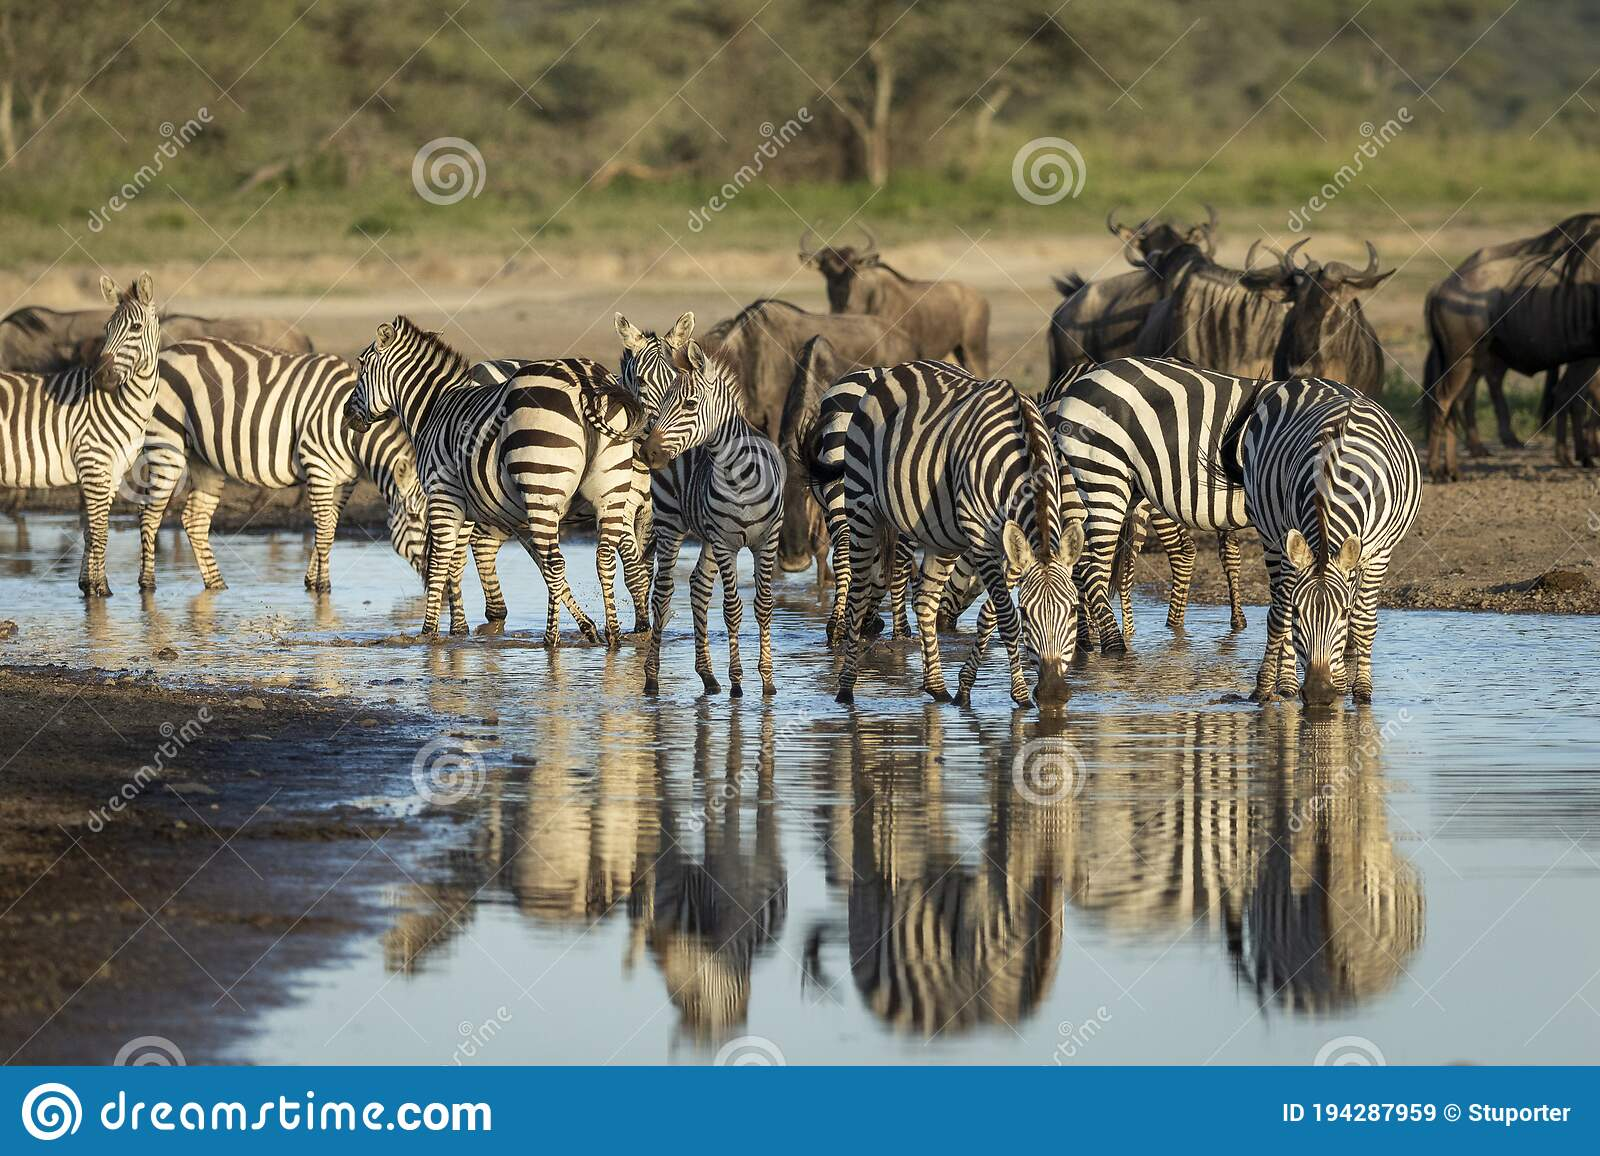 Wildlife 10x15 FT Photo Backdrops,Herd of Zebras and Wildebeest Drinking Water in Serengeti Tanzania Picture Background for Photography Kids Adult Photo Booth Video Shoot Vinyl Studio Props